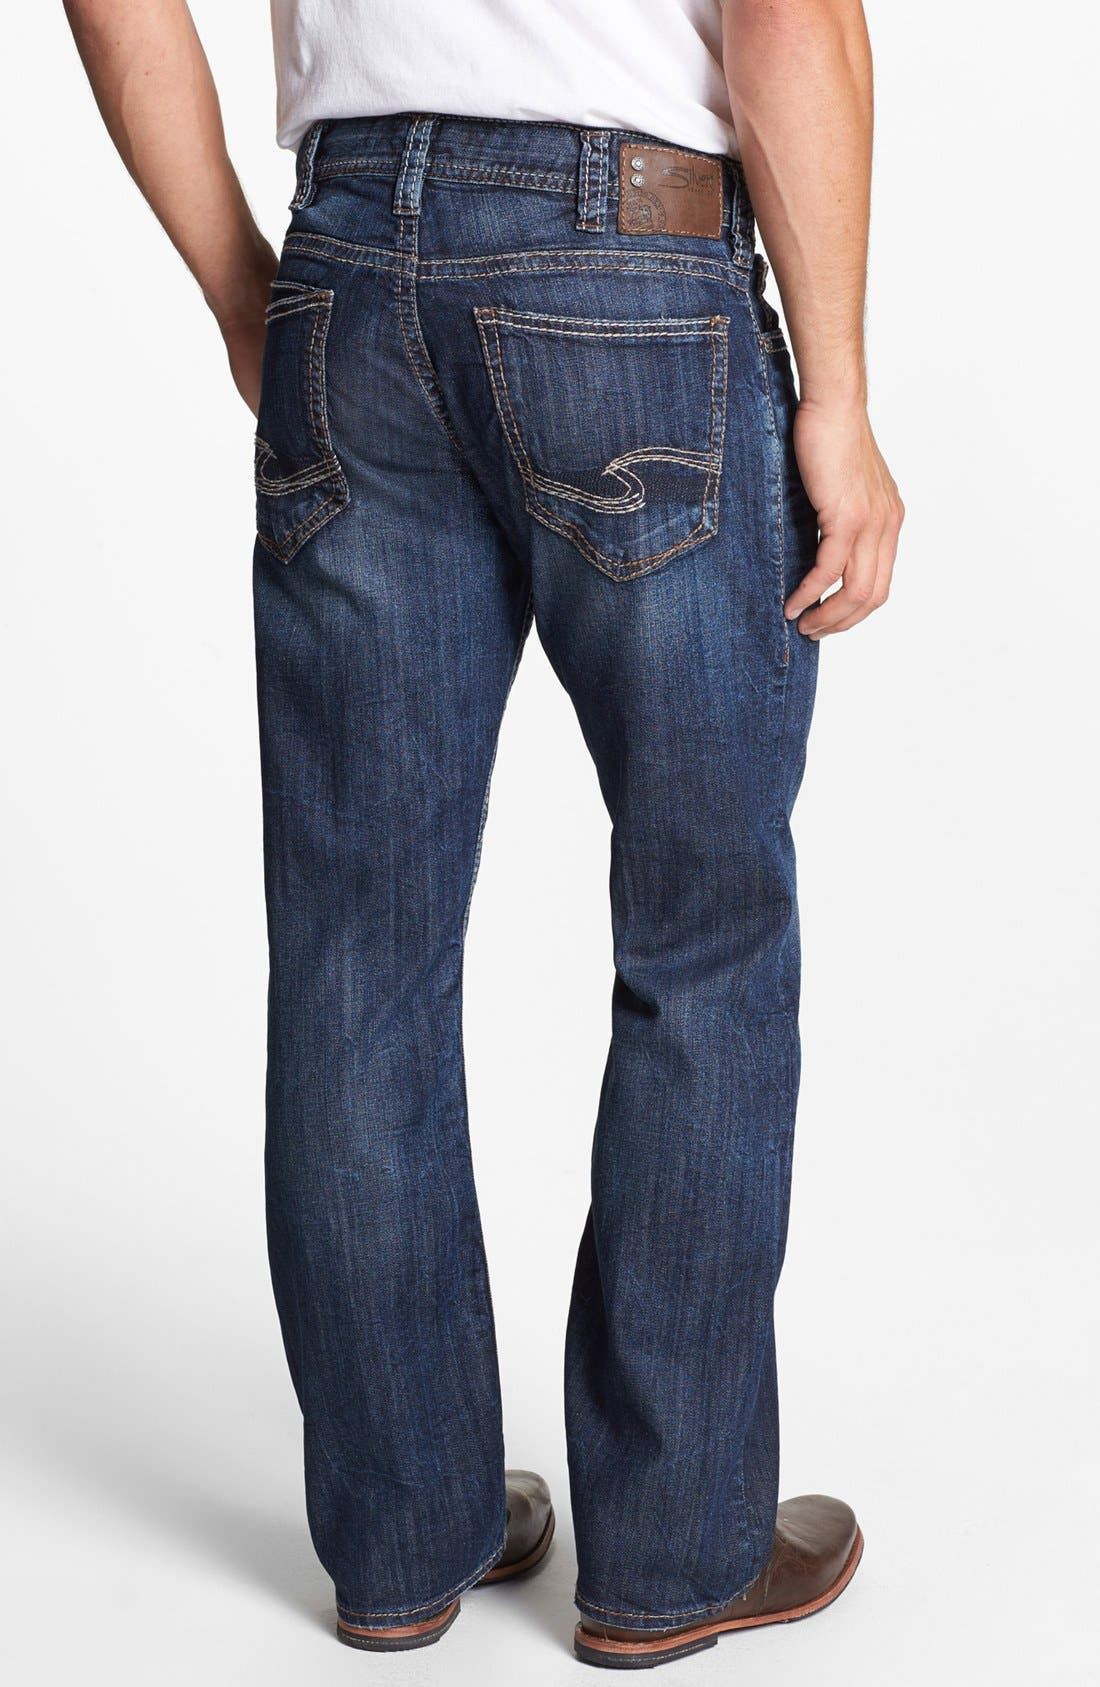 Alternate Image 1 Selected - Silver Jeans Co. 'Zac' Relaxed Jeans (Indigo)